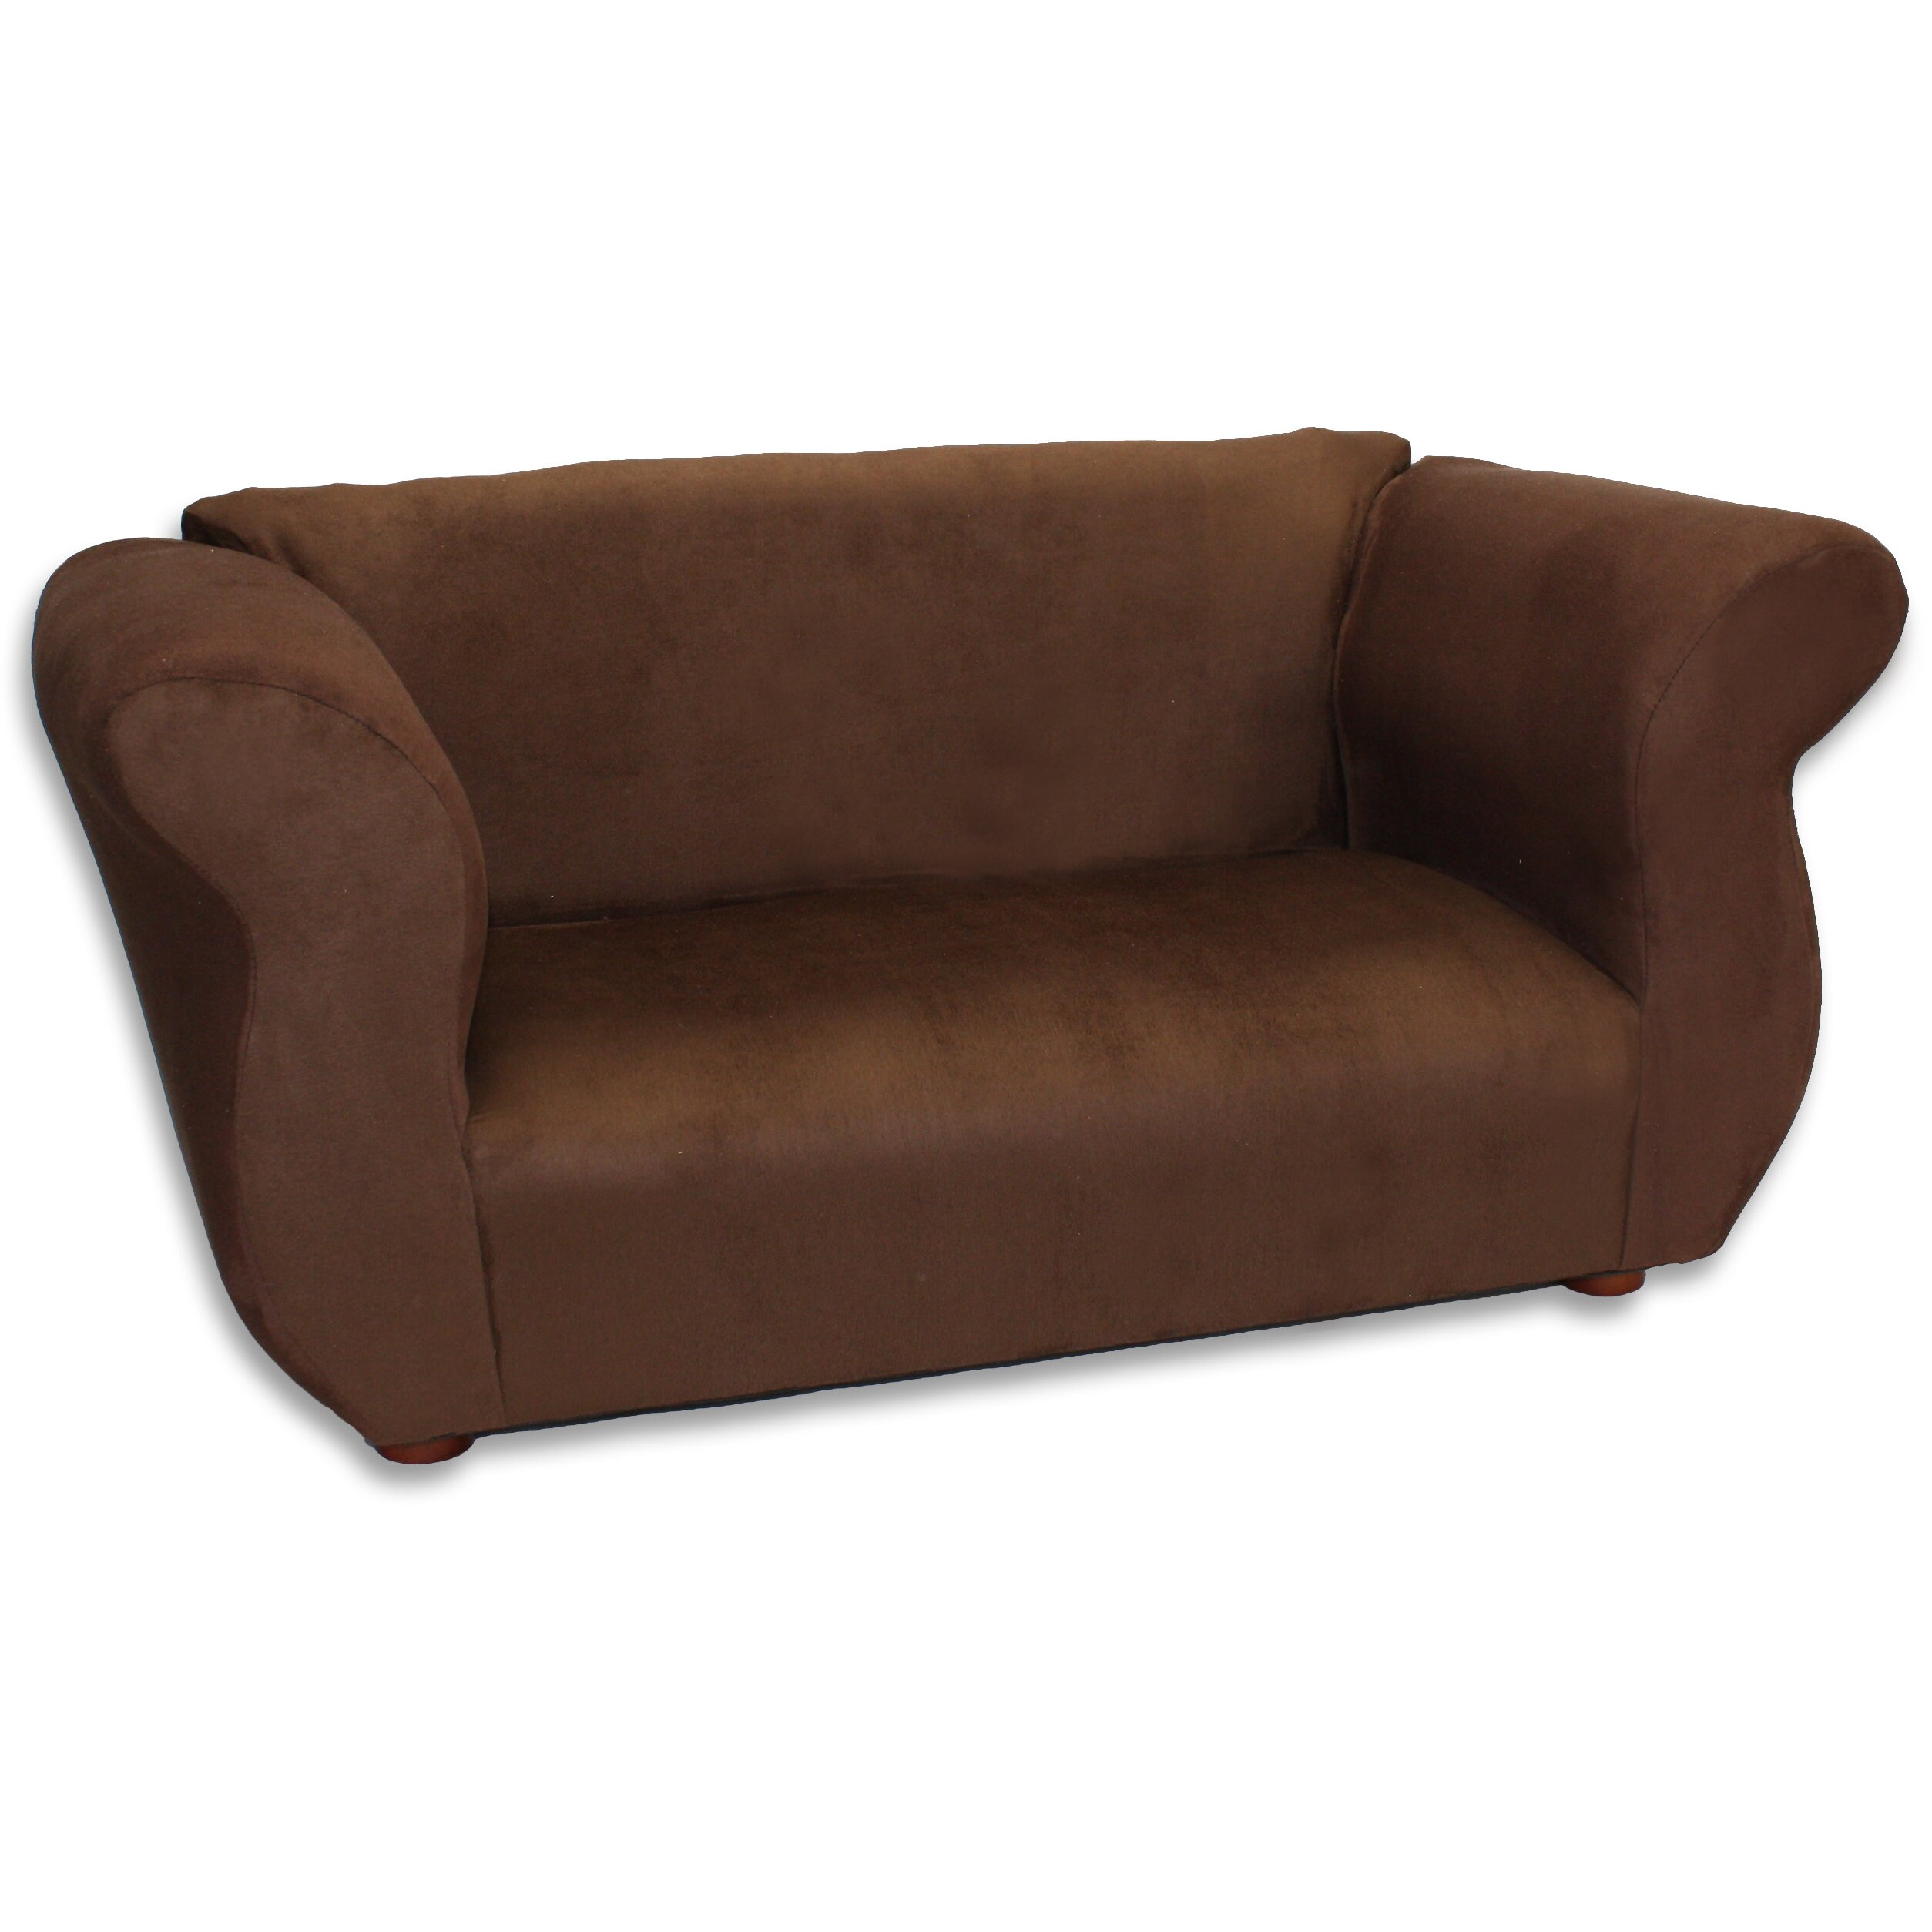 Keet Fancy Kids Sofa Reviews Wayfair